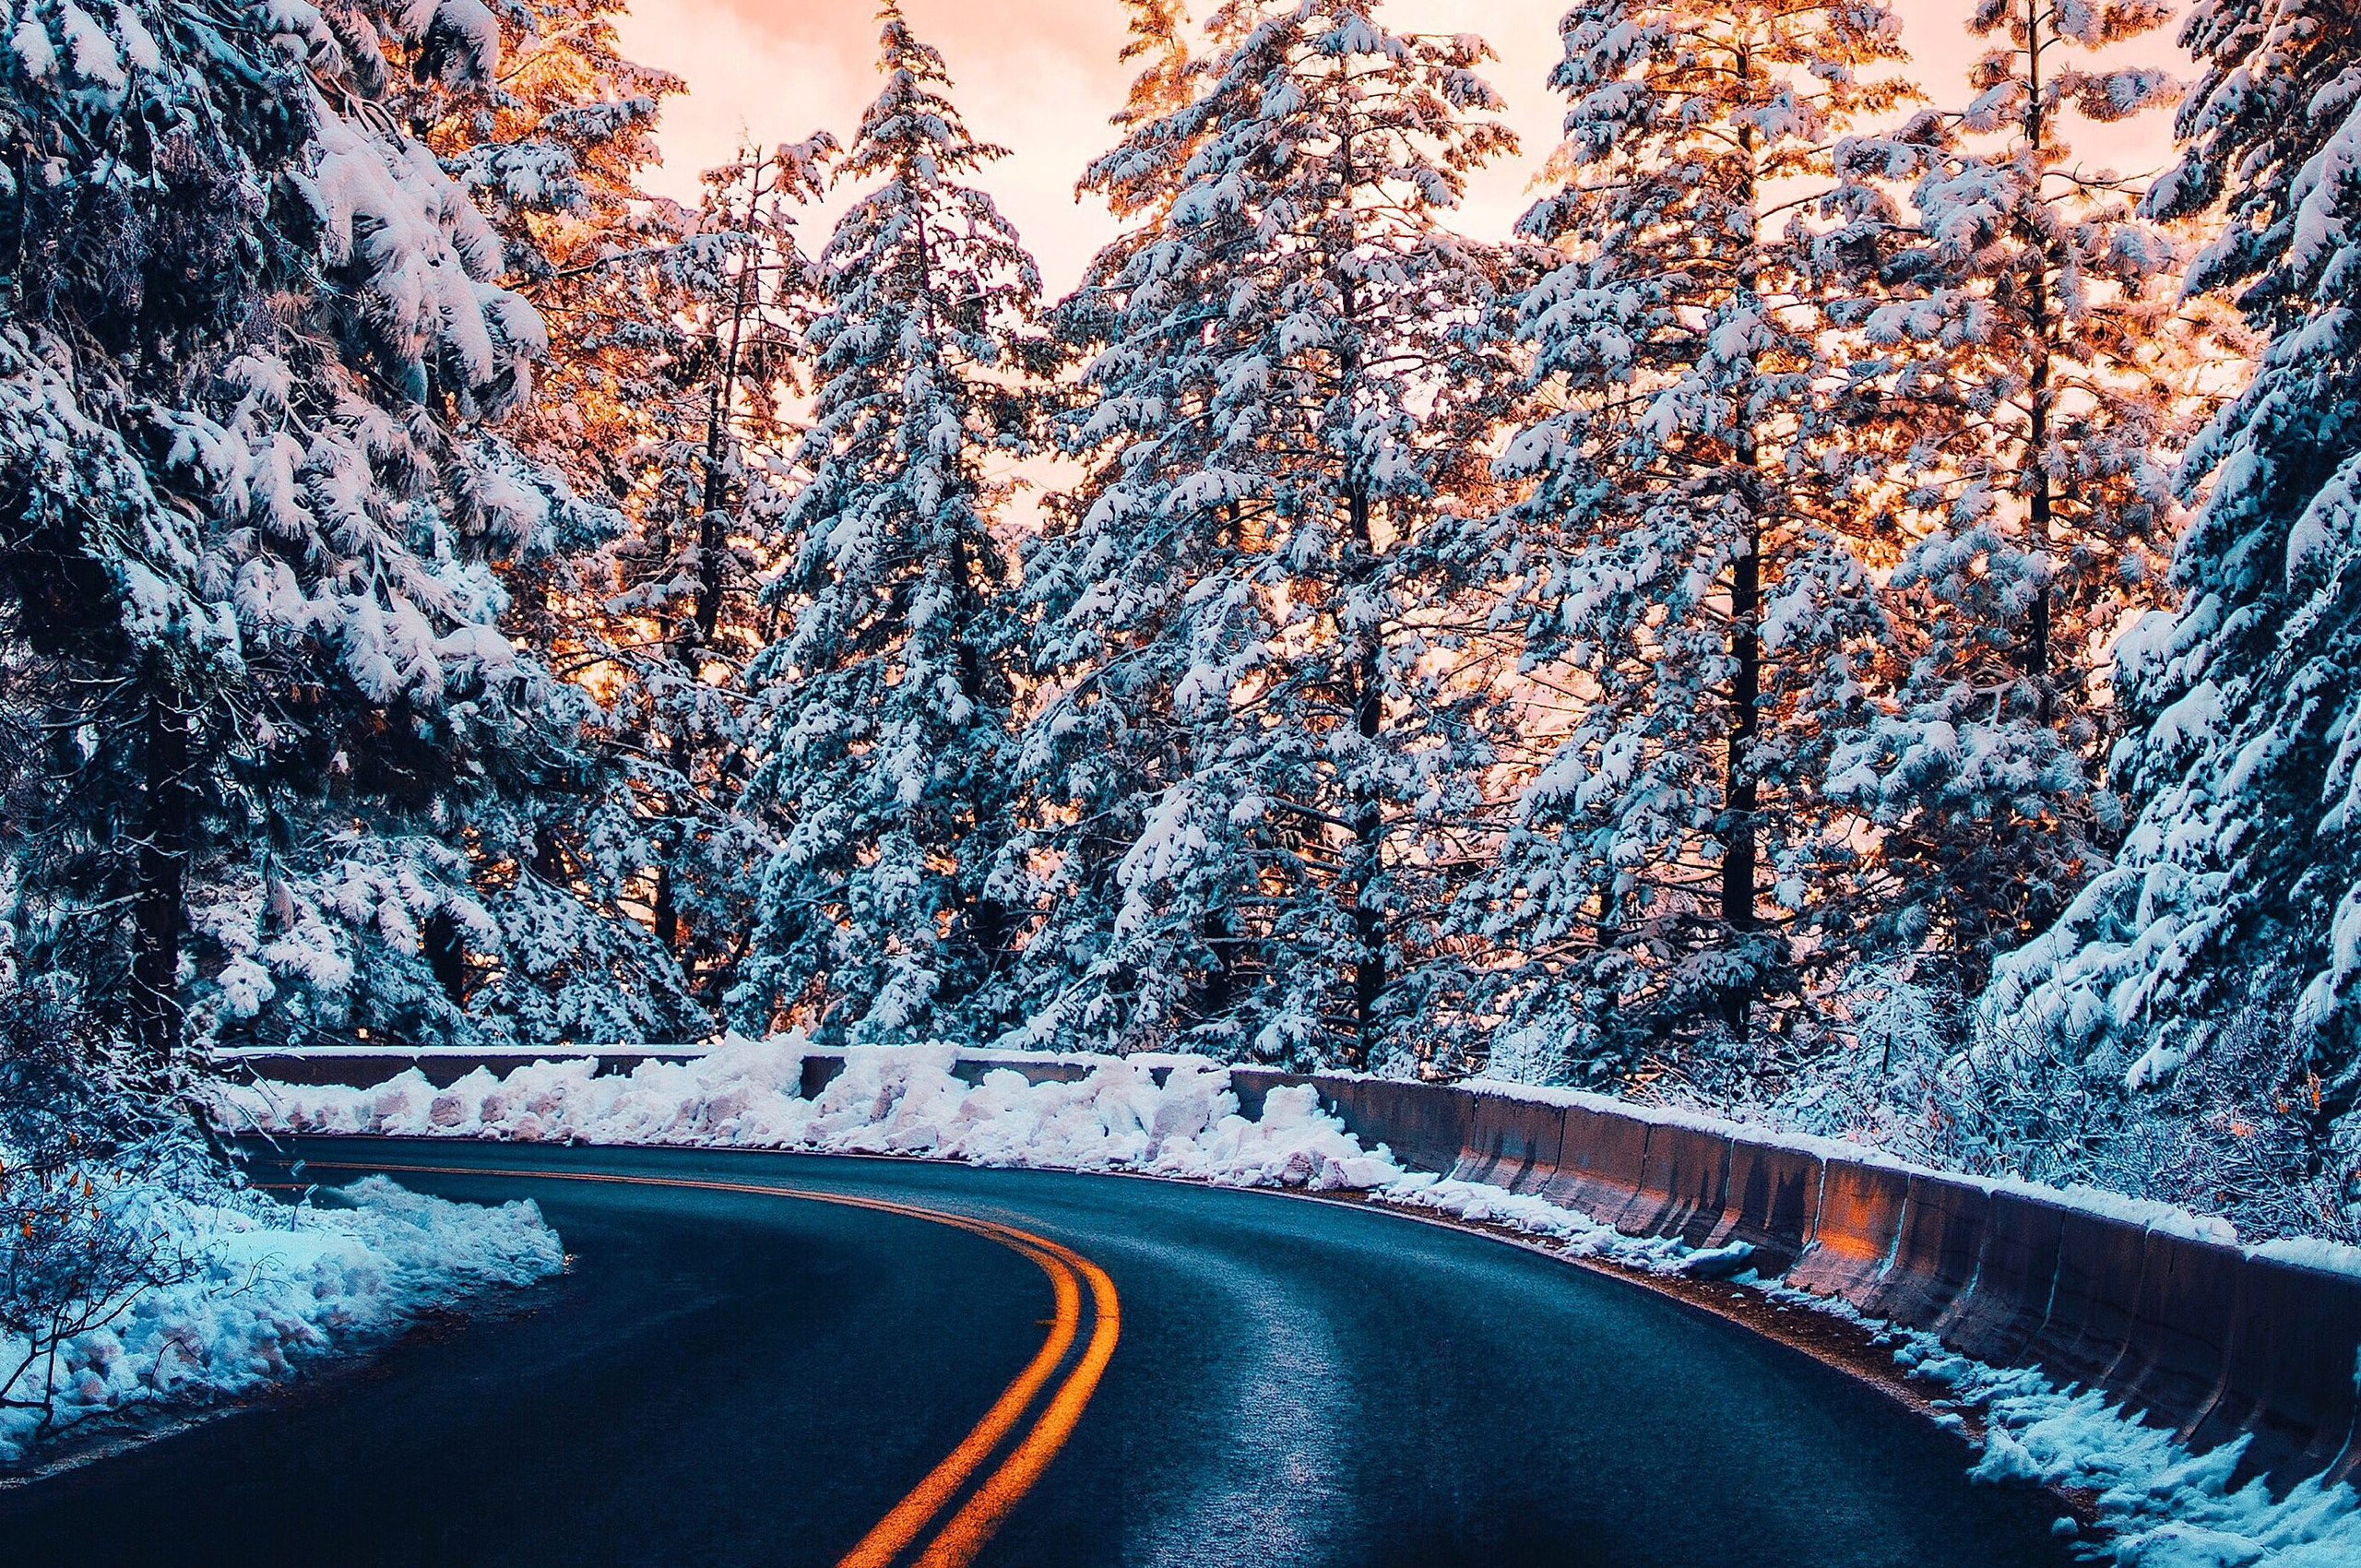 road-trees-winter-4k-tm.jpg